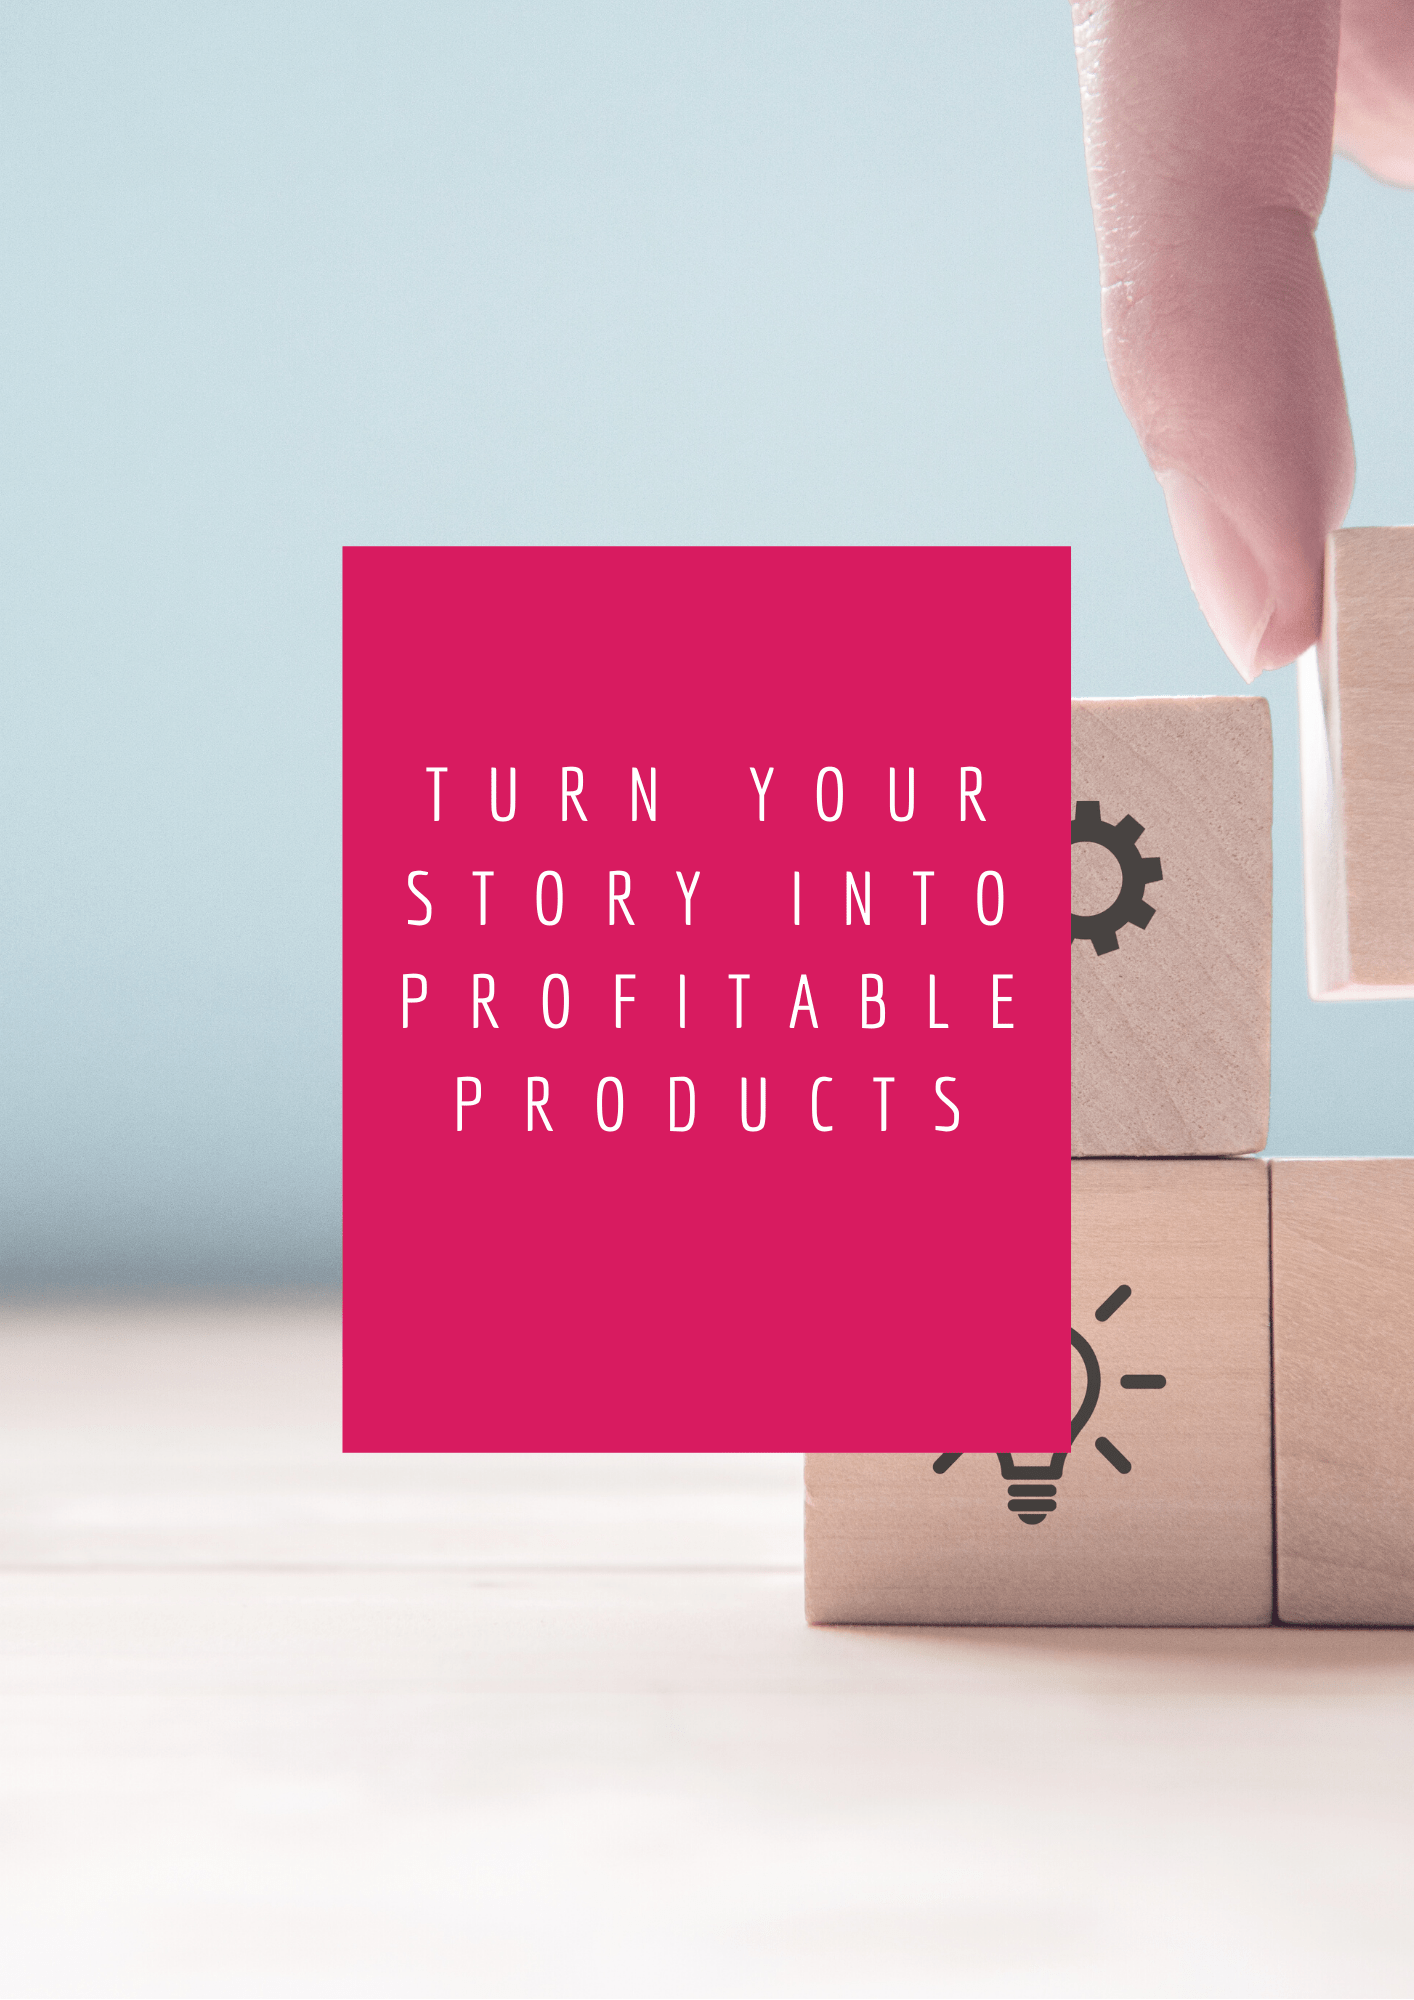 Turn your story into profitable products